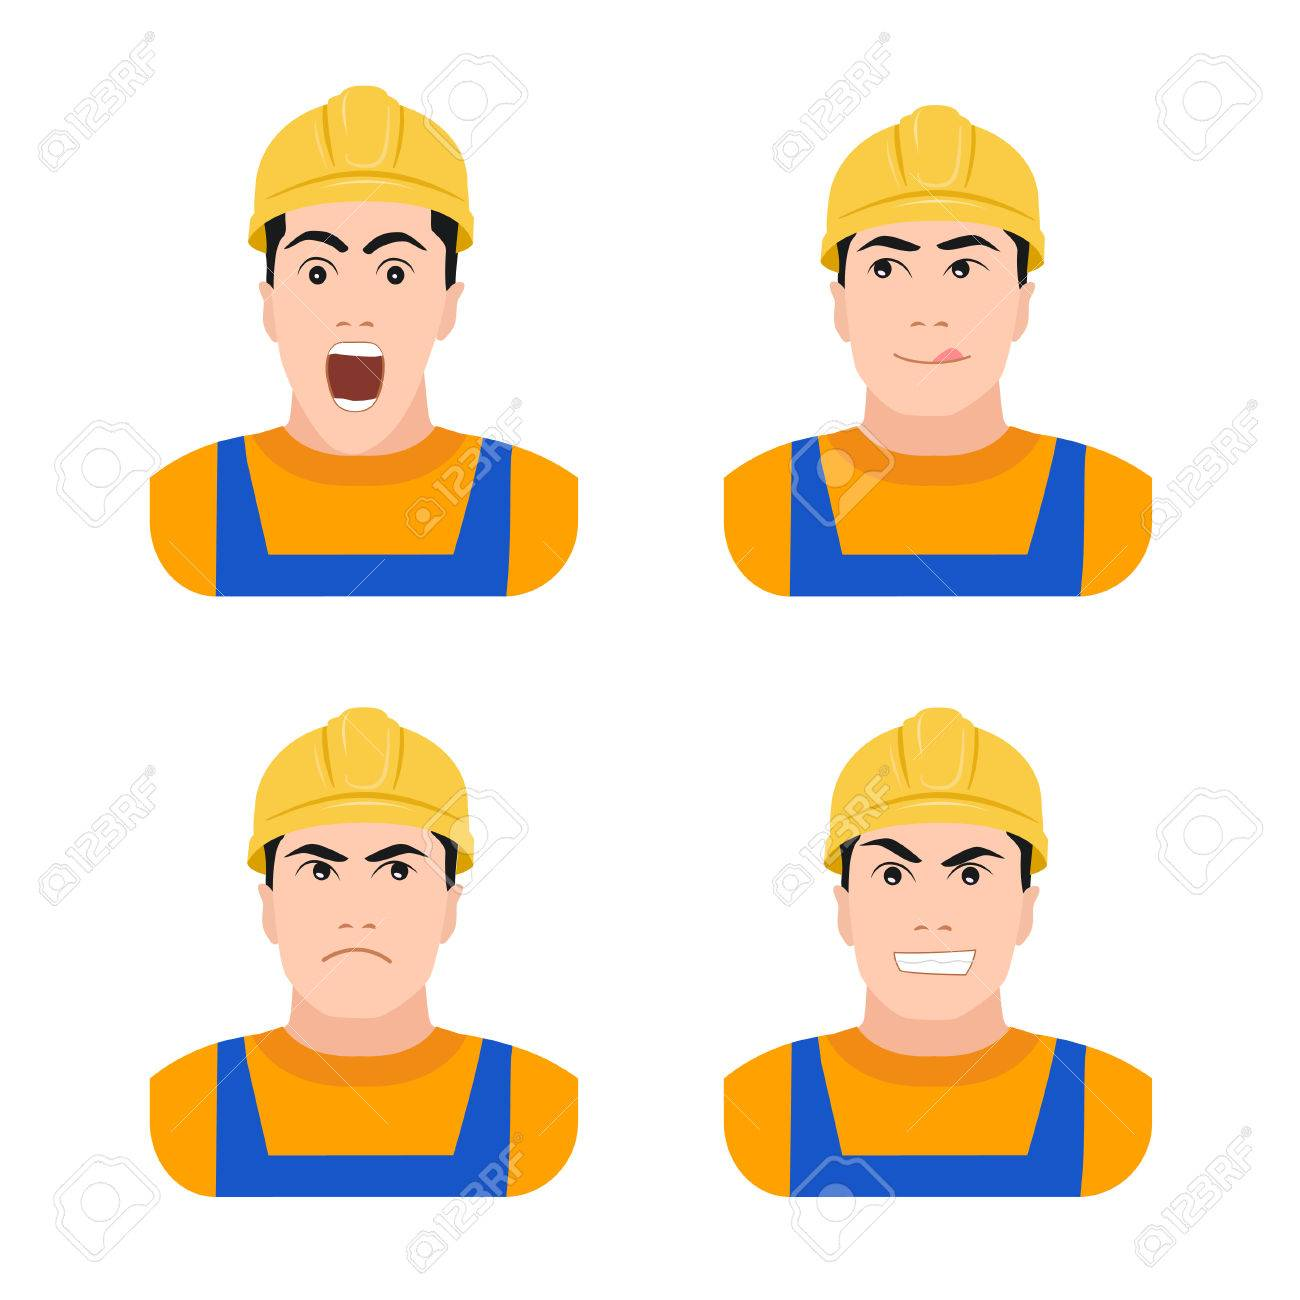 Builder worker at construction different emotions flat vector illustration on a white background, surprise, joy, anger, fear - 41262060